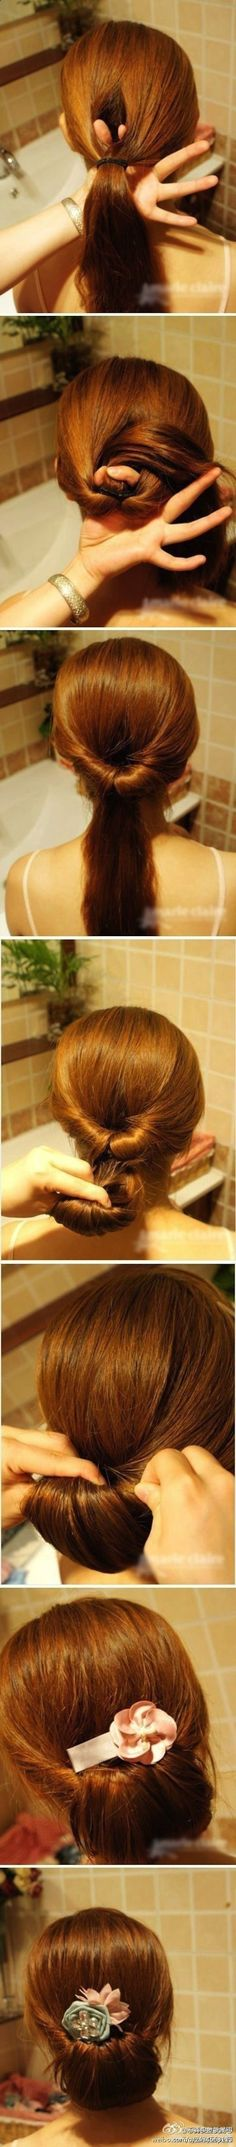 Expert Hair Care Tips For Any Age. Your hair might be your worst enemy, but it does not have to be! You can reclaim your hair with a little research and effort. First, identify your hair typ Five Minute Hairstyles, Cool Hairstyles, Hairstyle Ideas, Office Hairstyles, Summer Hairstyles, Hairstyle Tutorials, Easy Ponytail Hairstyles, Creative Hairstyles, Latest Hairstyles